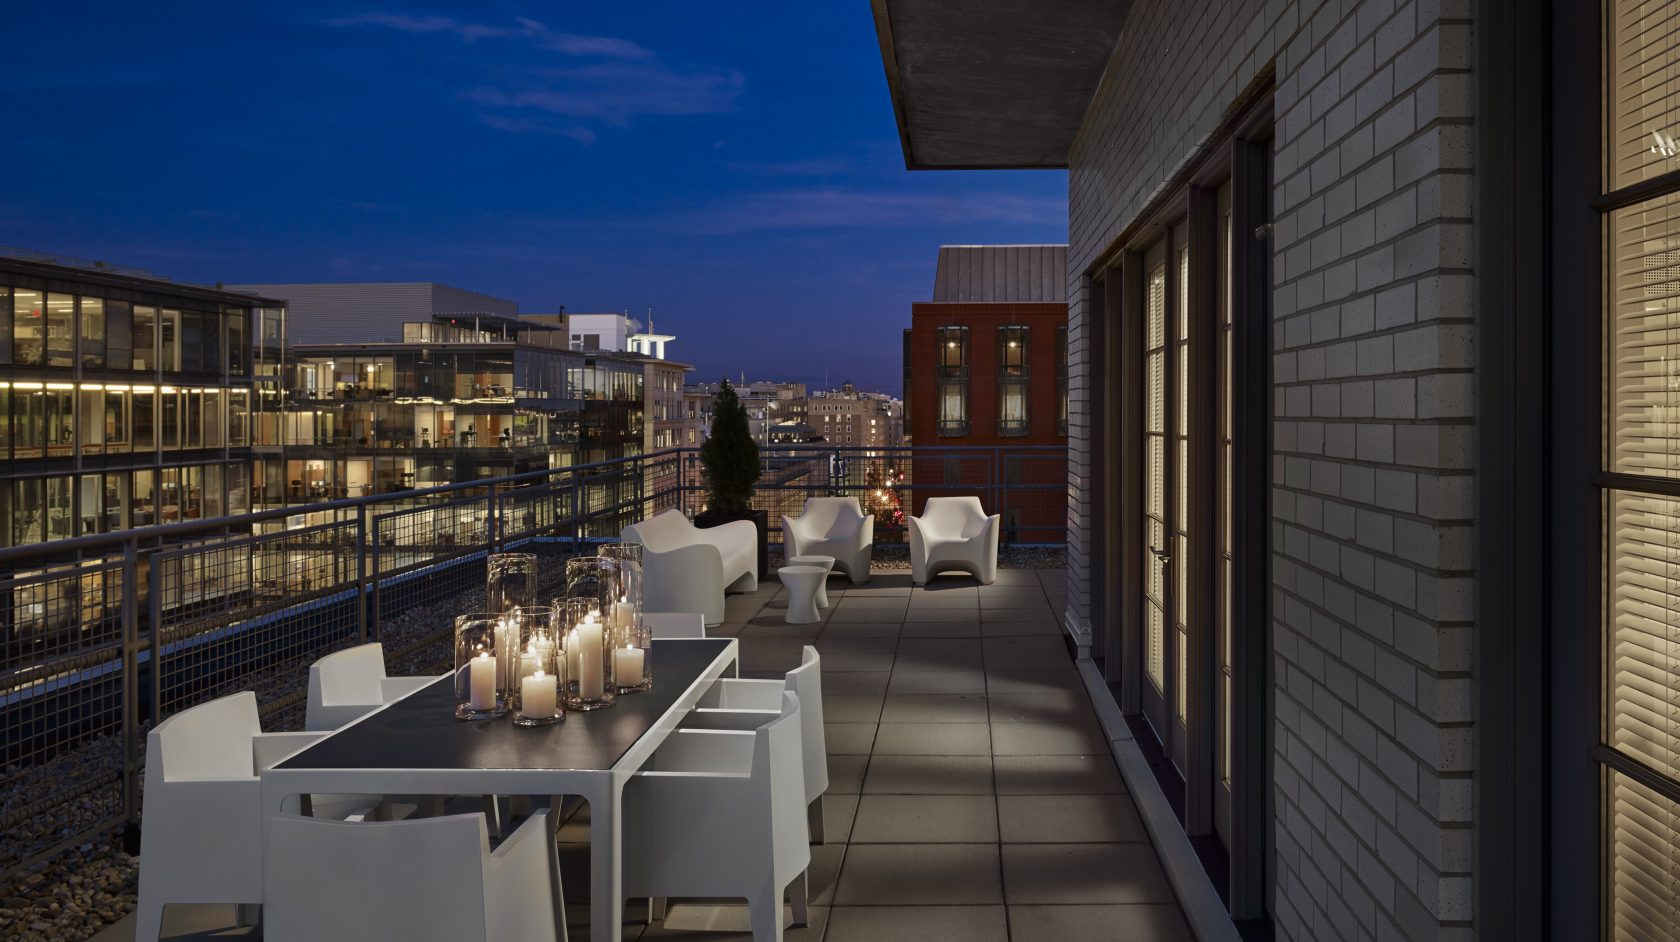 Welcome To AKA White House Modern Outdoor Chairs And Table With Candles    Rooftop View From AKA Washington DC AKA Washington DC Luxury Apartment ...